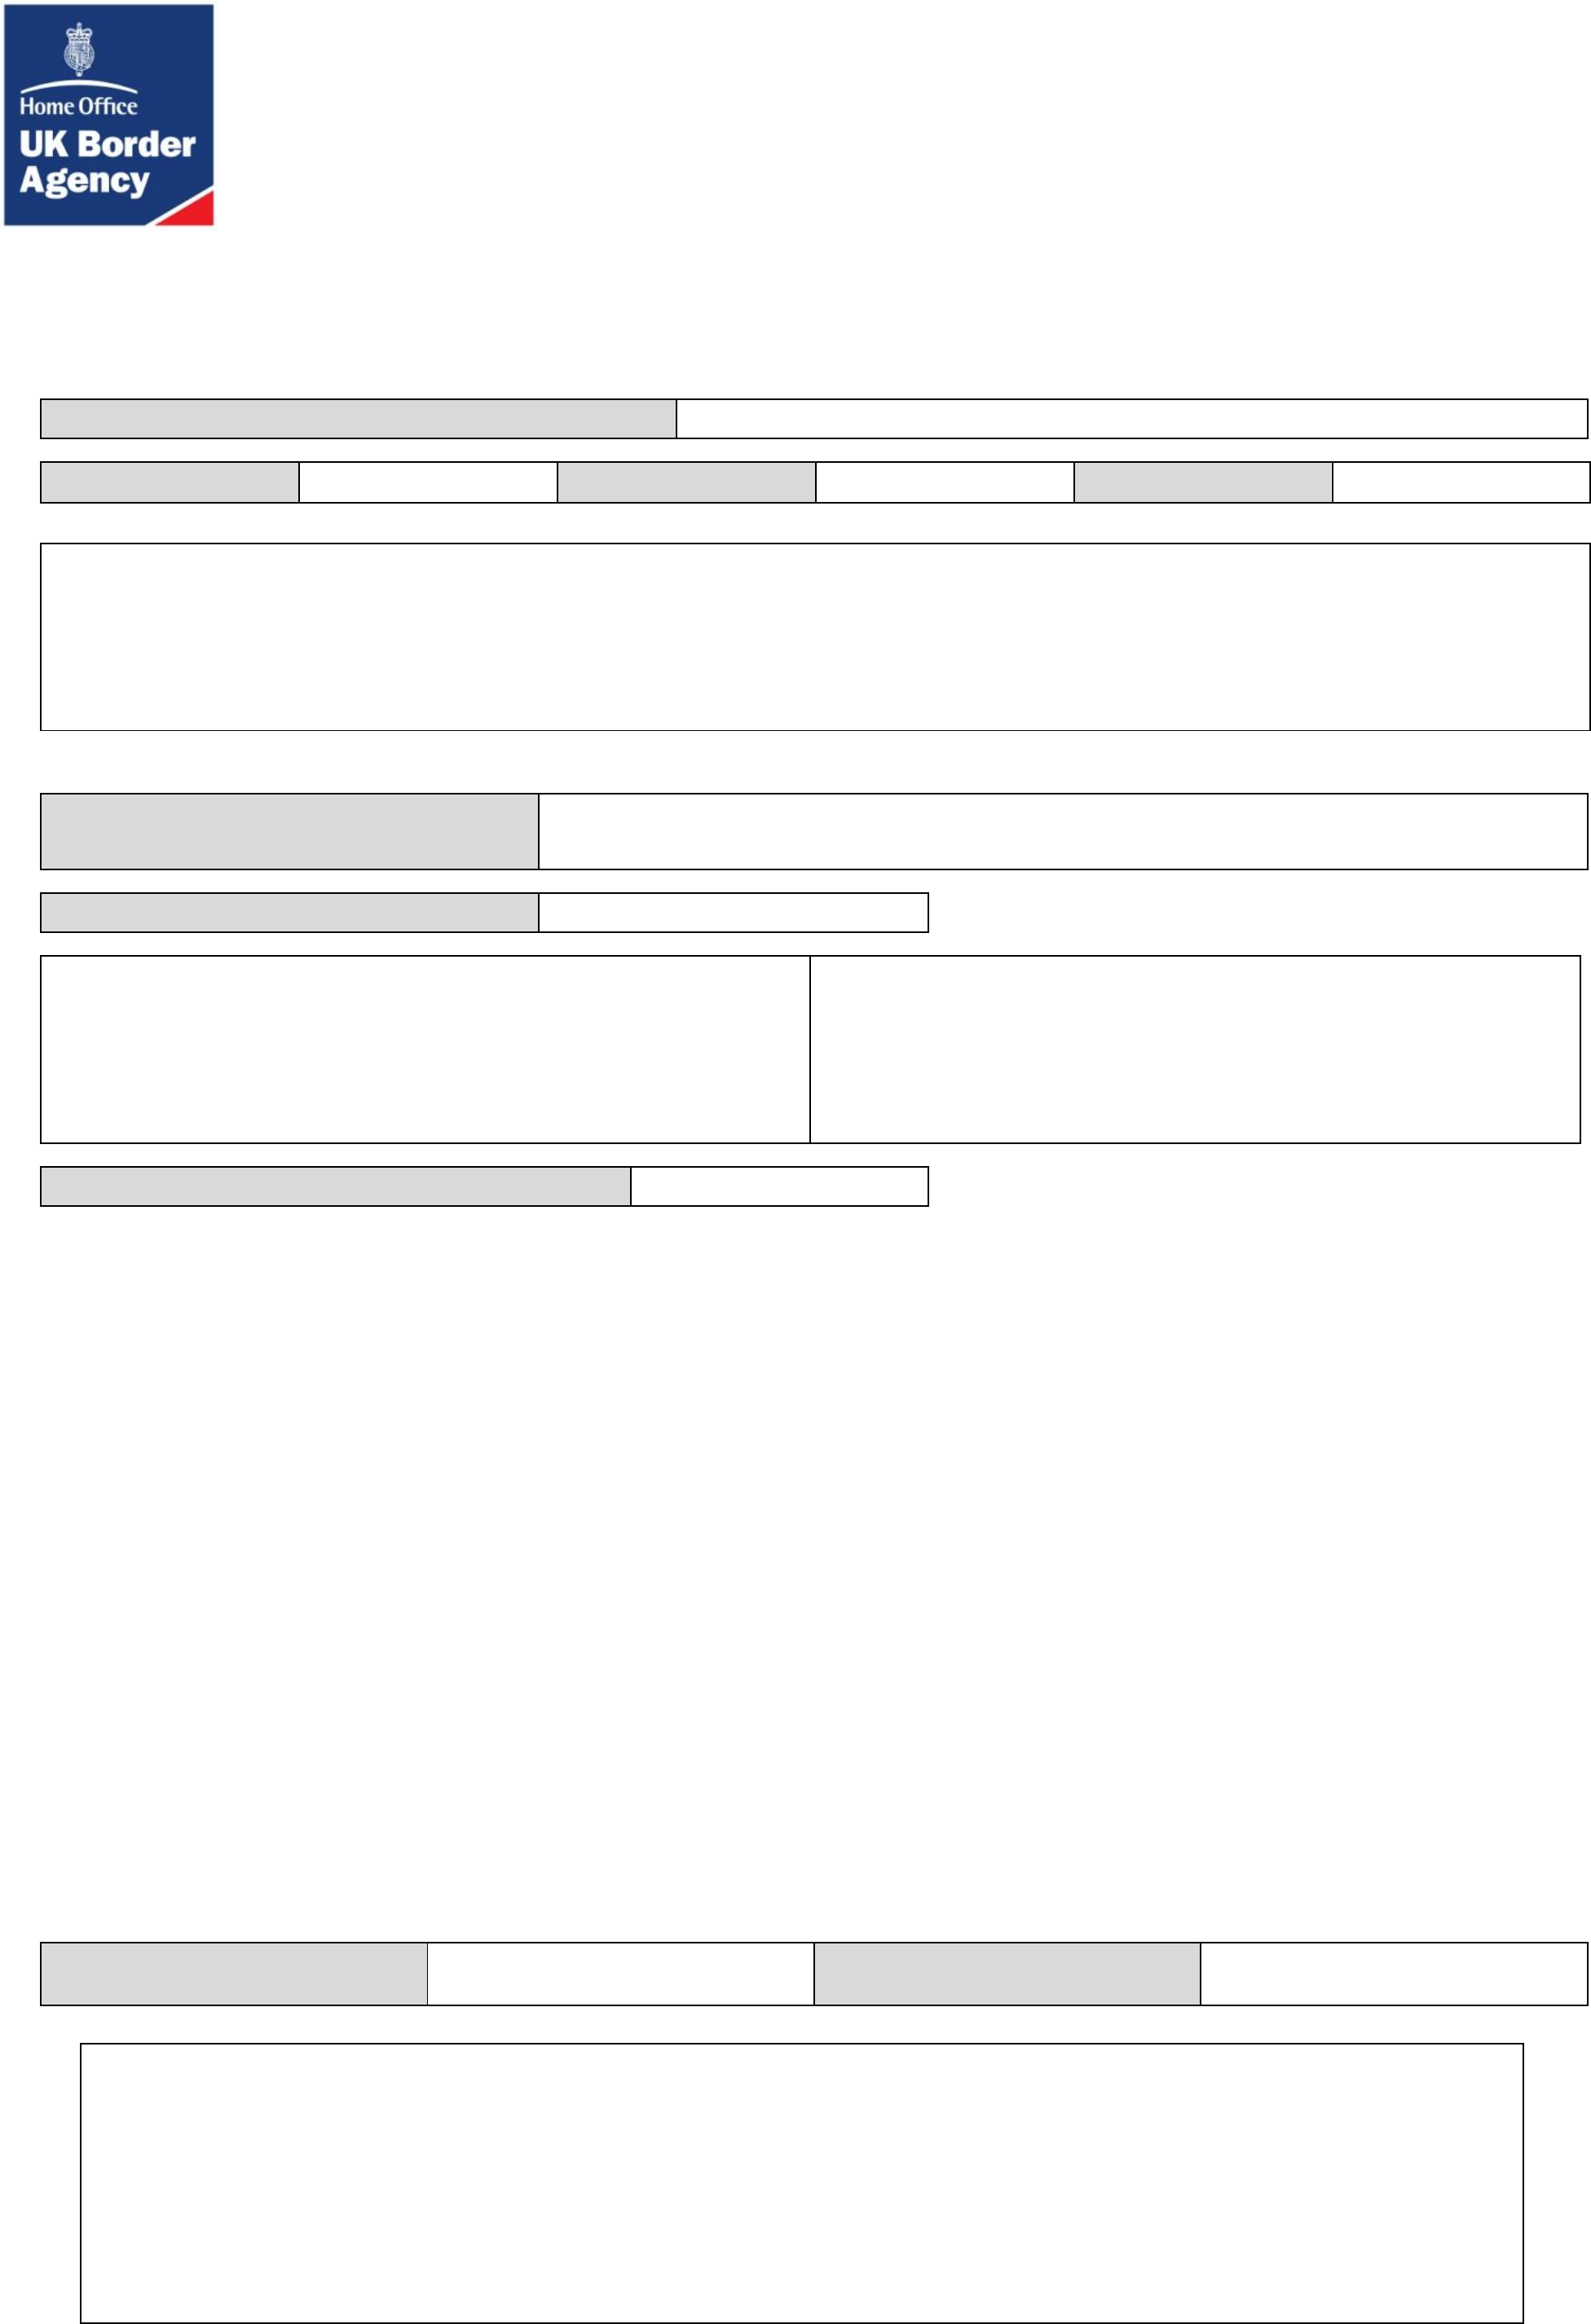 Blank sponsor form template blank sponsor form template blank sponsor form template sponsorship undertaking form uk free download 86 spiritdancerdesigns Choice Image